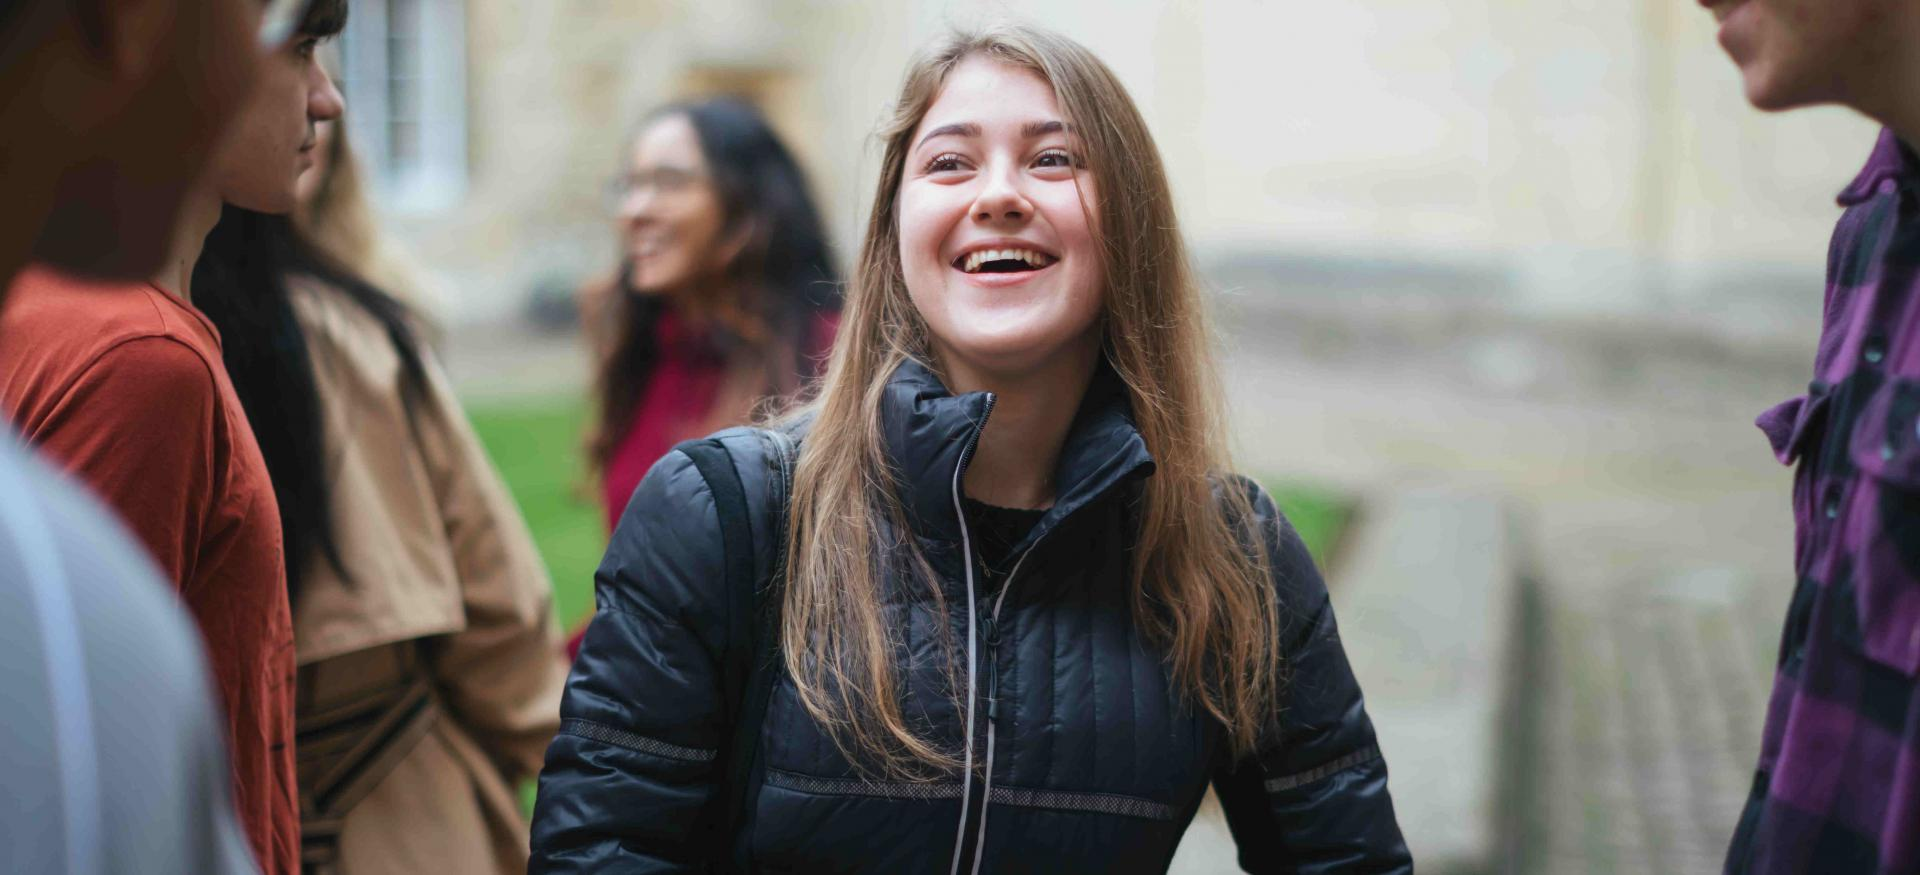 A female student smiles while talking to other students in Trinity College's Durham Quad.